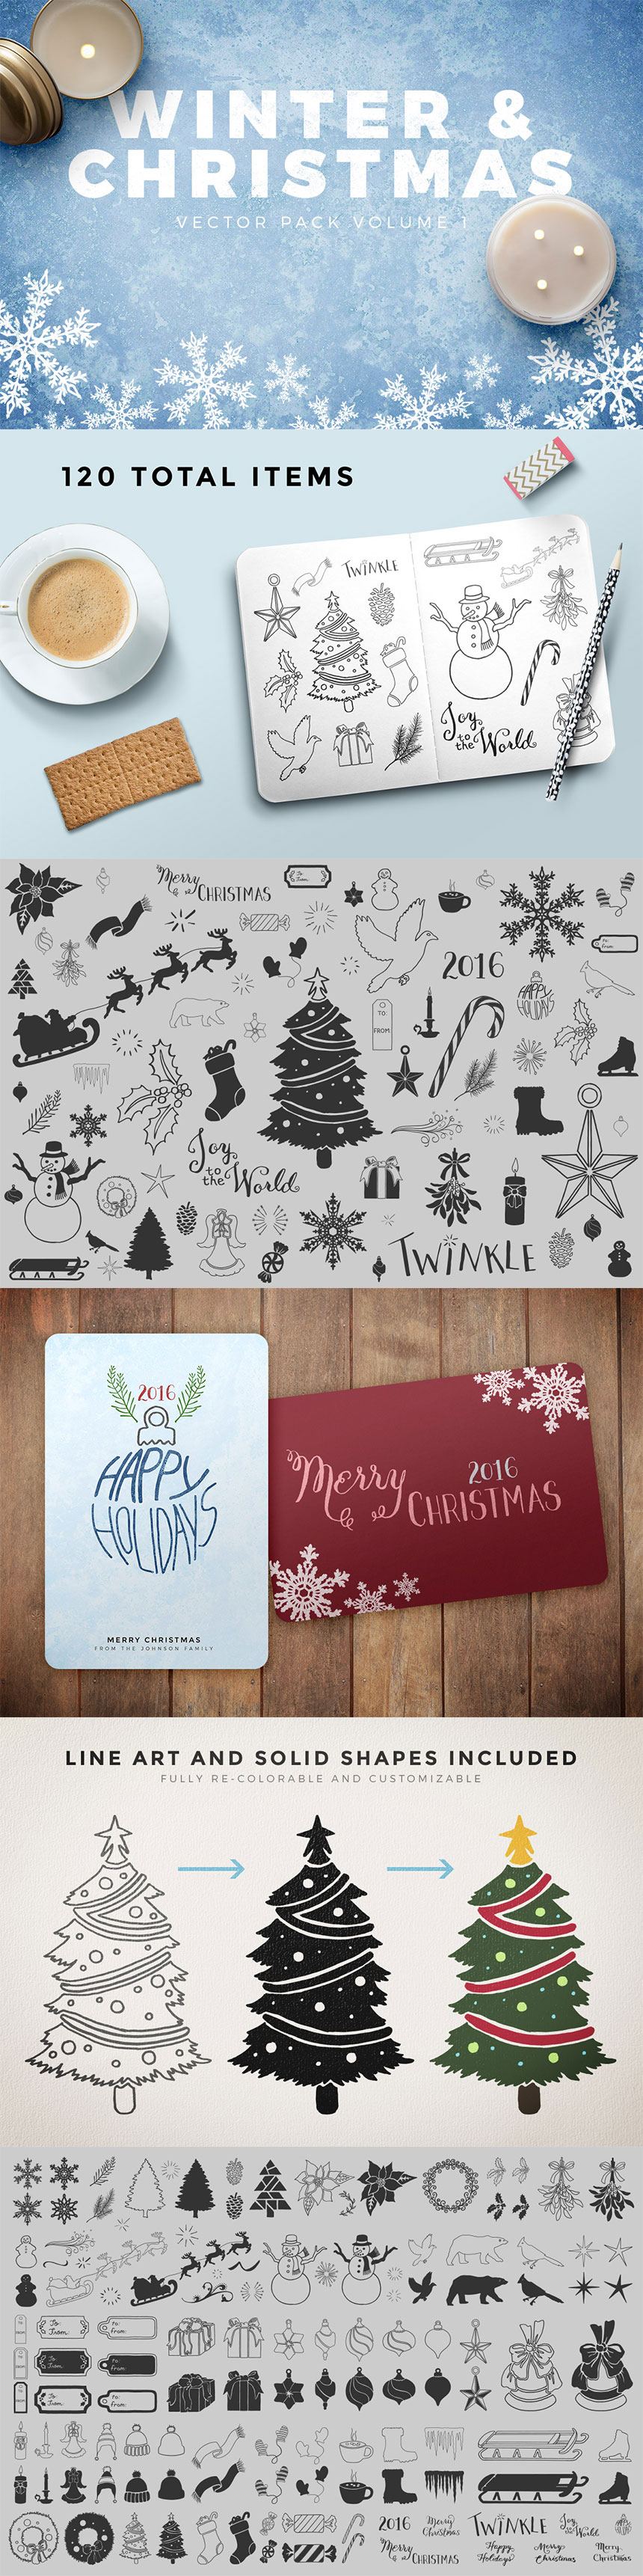 Thousand of fall and winter design resources to last your through Christmas :)